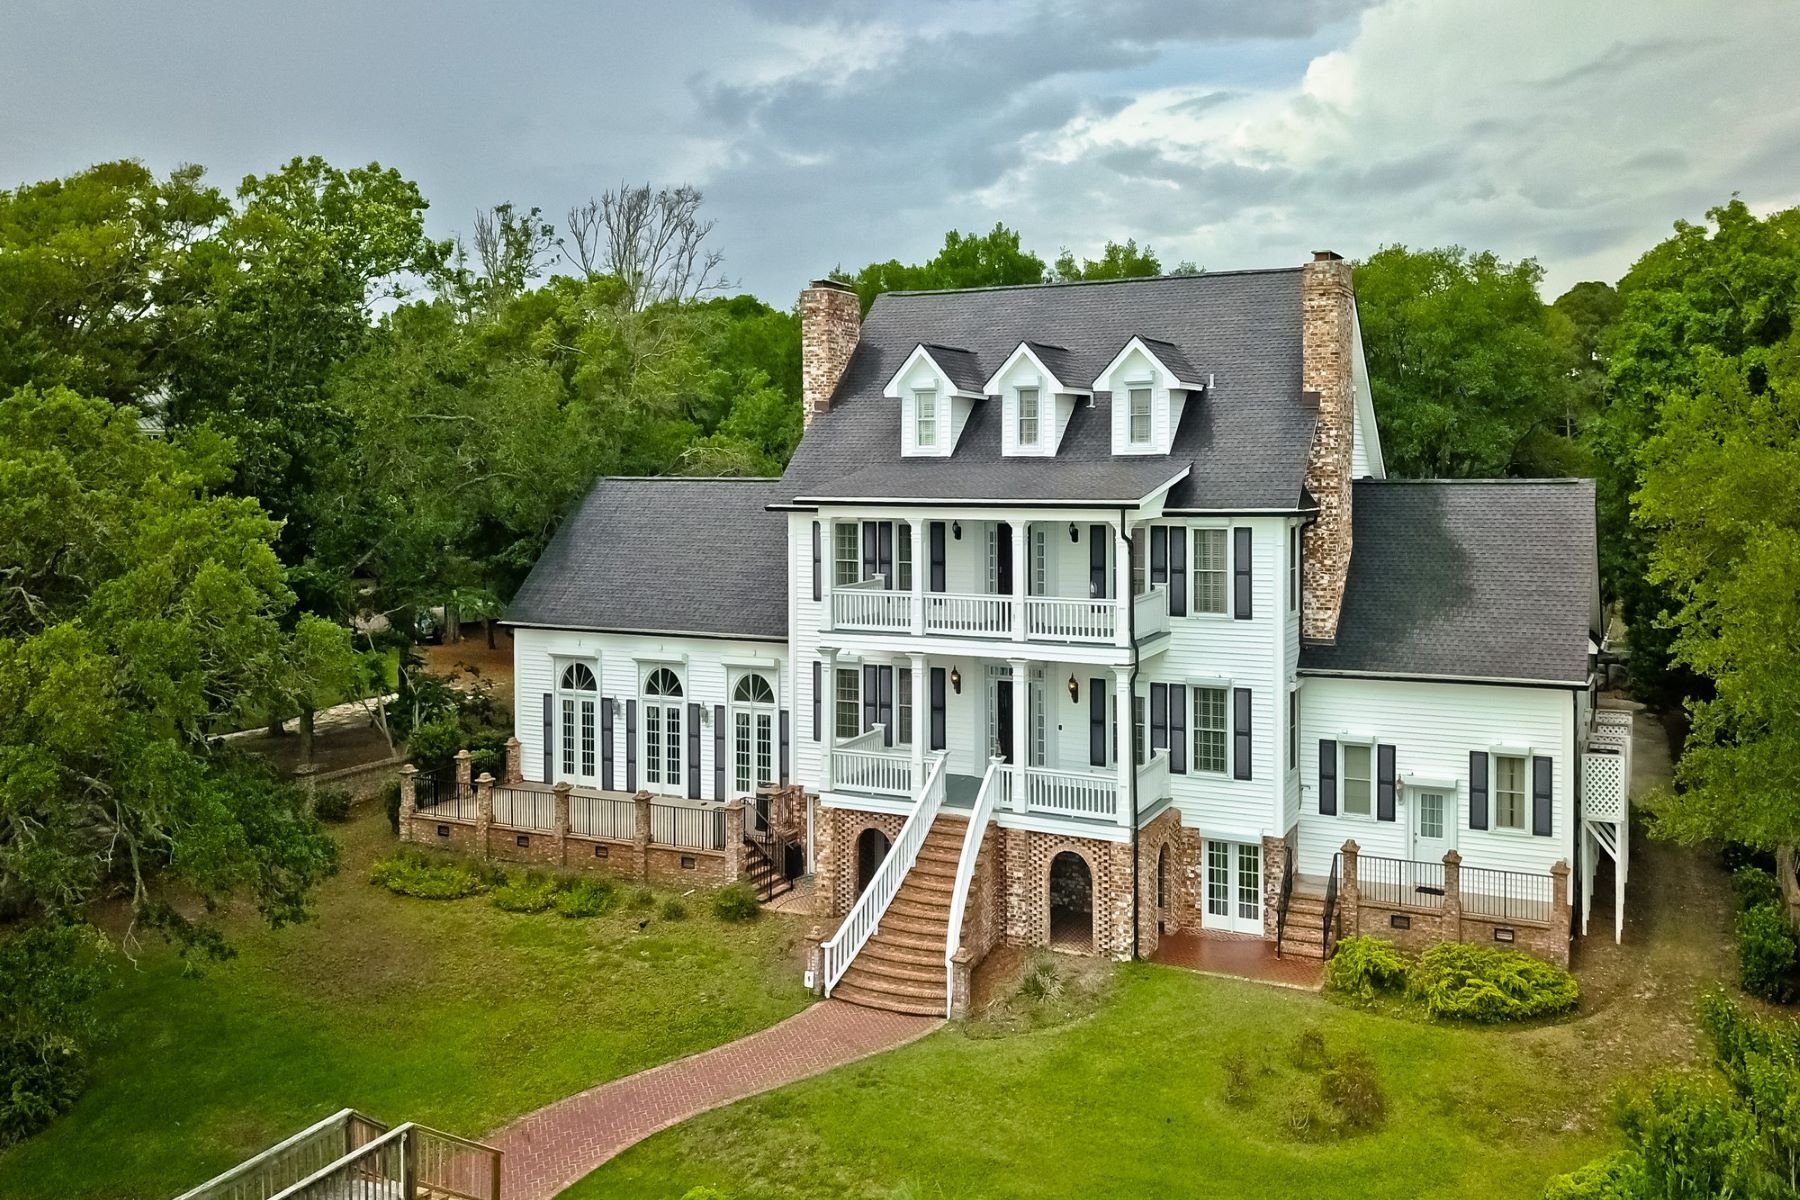 Single Family Homes for Active at Private Gated Waterfront Grand Estate 815 Shoreline Drive W Sunset Beach, North Carolina 28468 United States